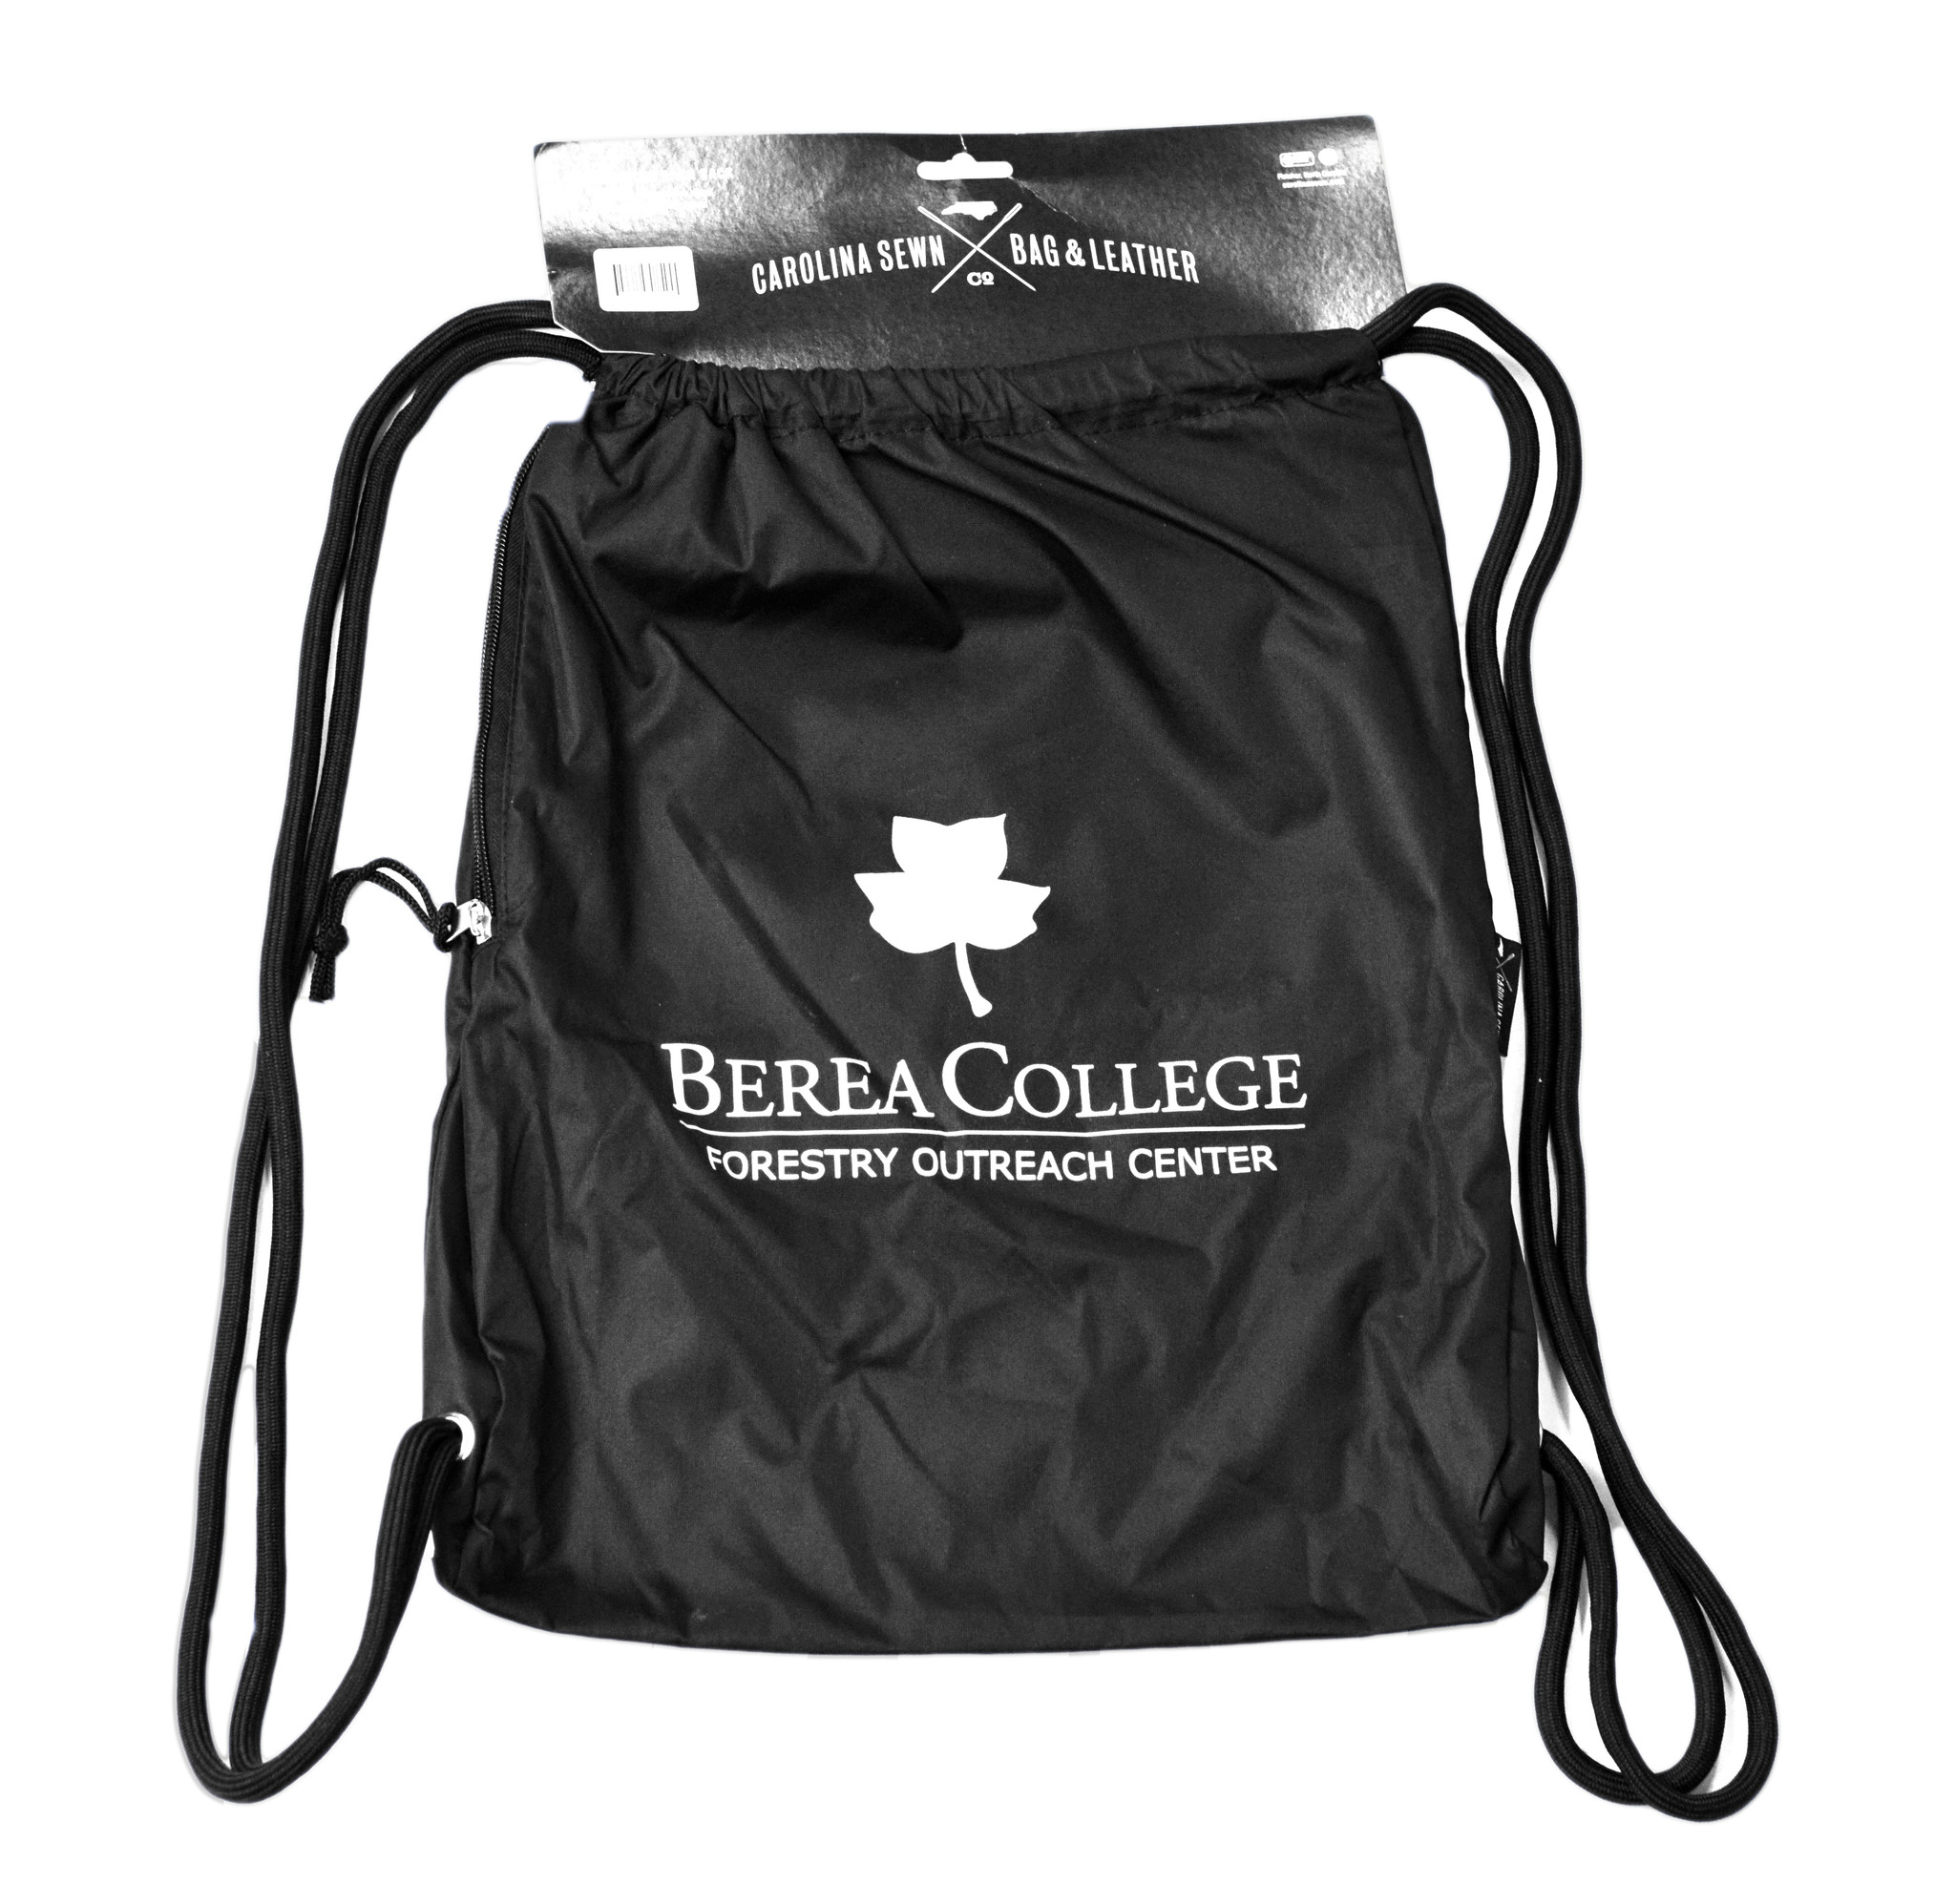 Black Cinch Forest Outreach Bag-1